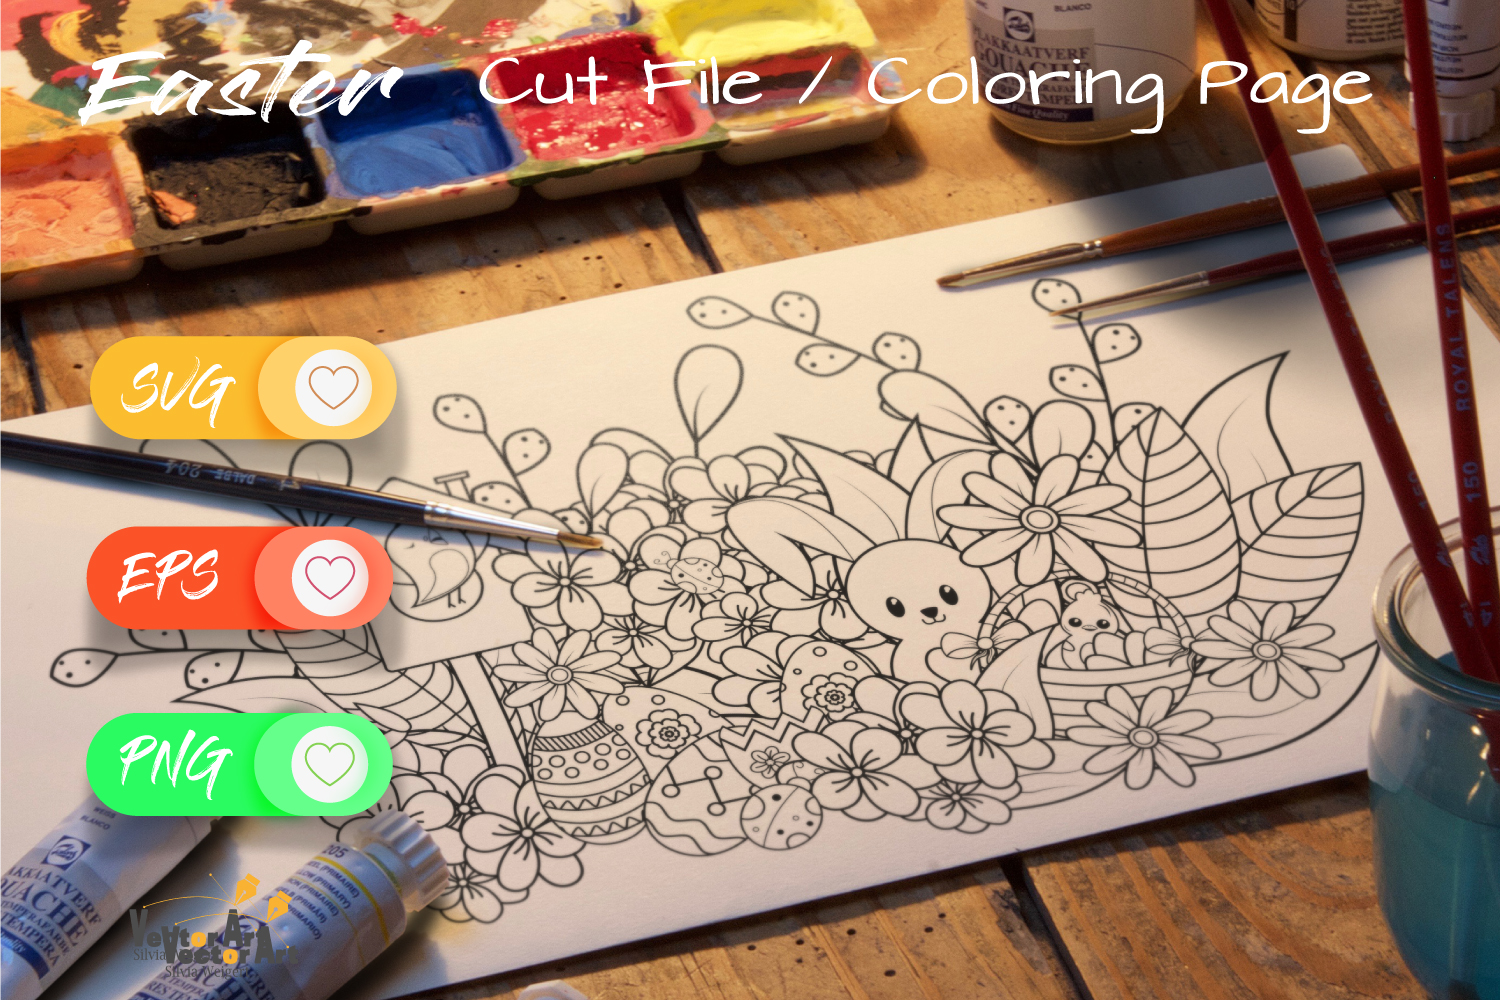 Easter Fun - Cut File and Coloring Page example image 2